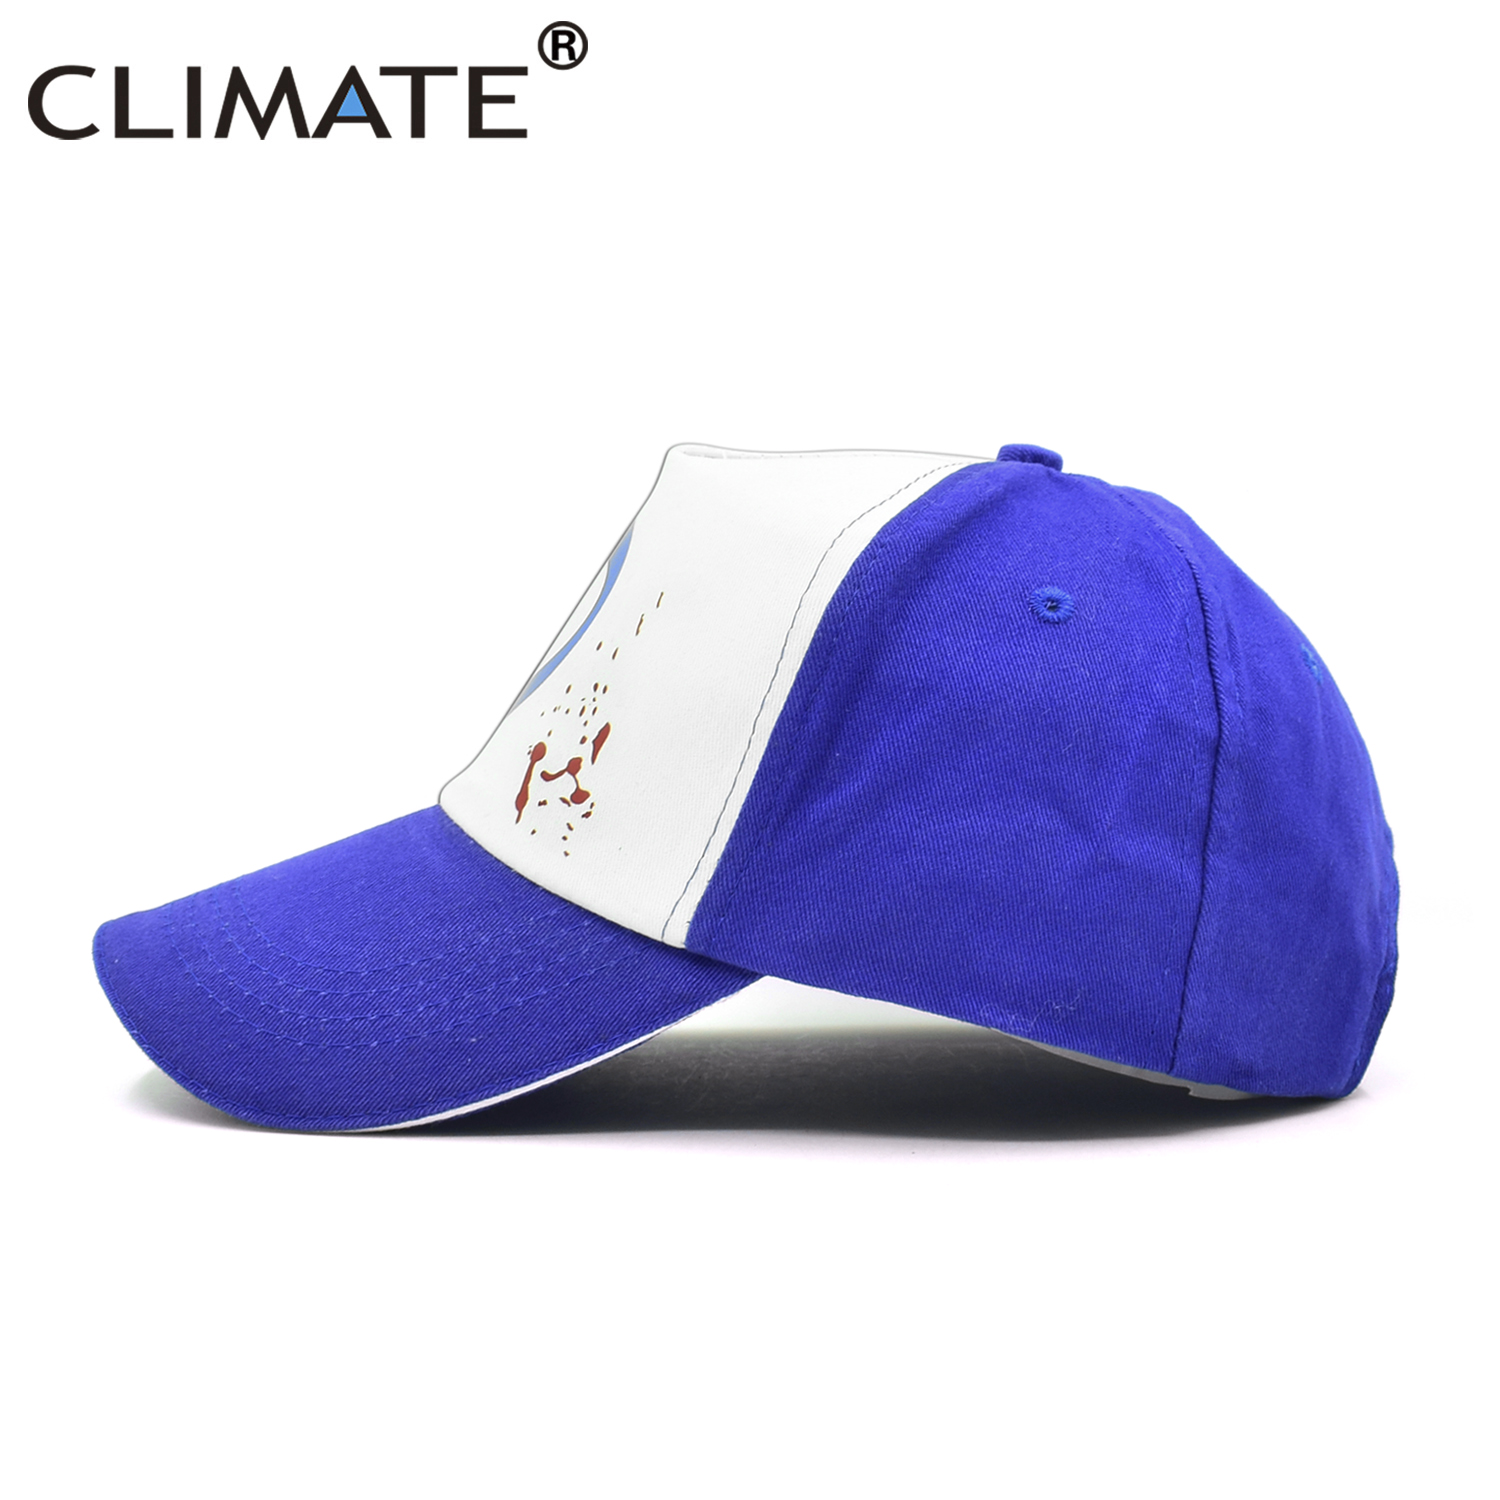 5498d7af4 US $6.06 35% OFF|Aliexpress.com : Buy CLIMATE Clementine The Walking Die  Game Cap Clementine Hat Cap Clem's Cosplay Trucker Cap Girl Coser Zombie ...